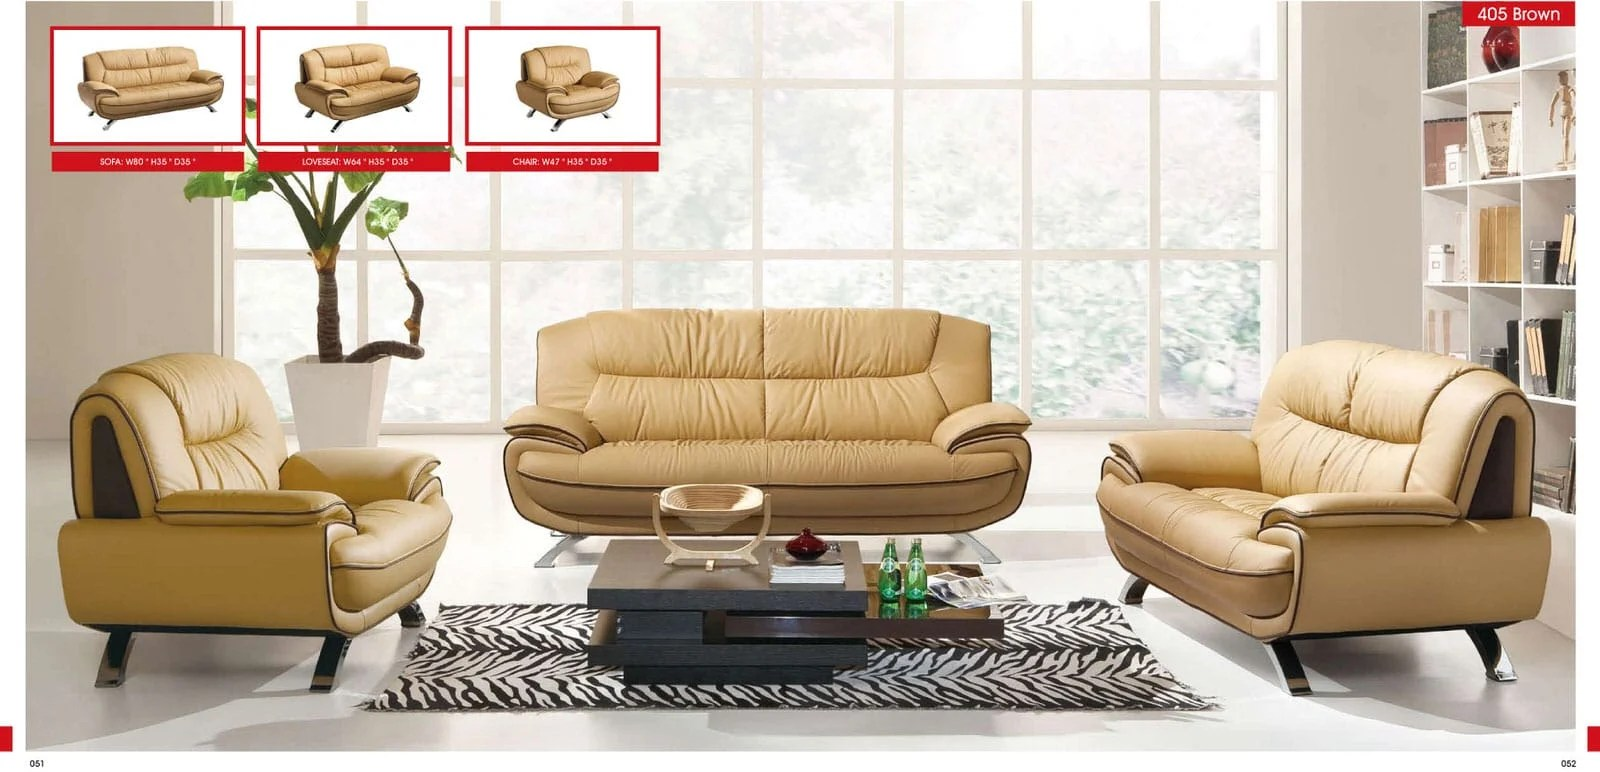 Altea 120 Sofa 405 Brown Leather Loveseat By Esf